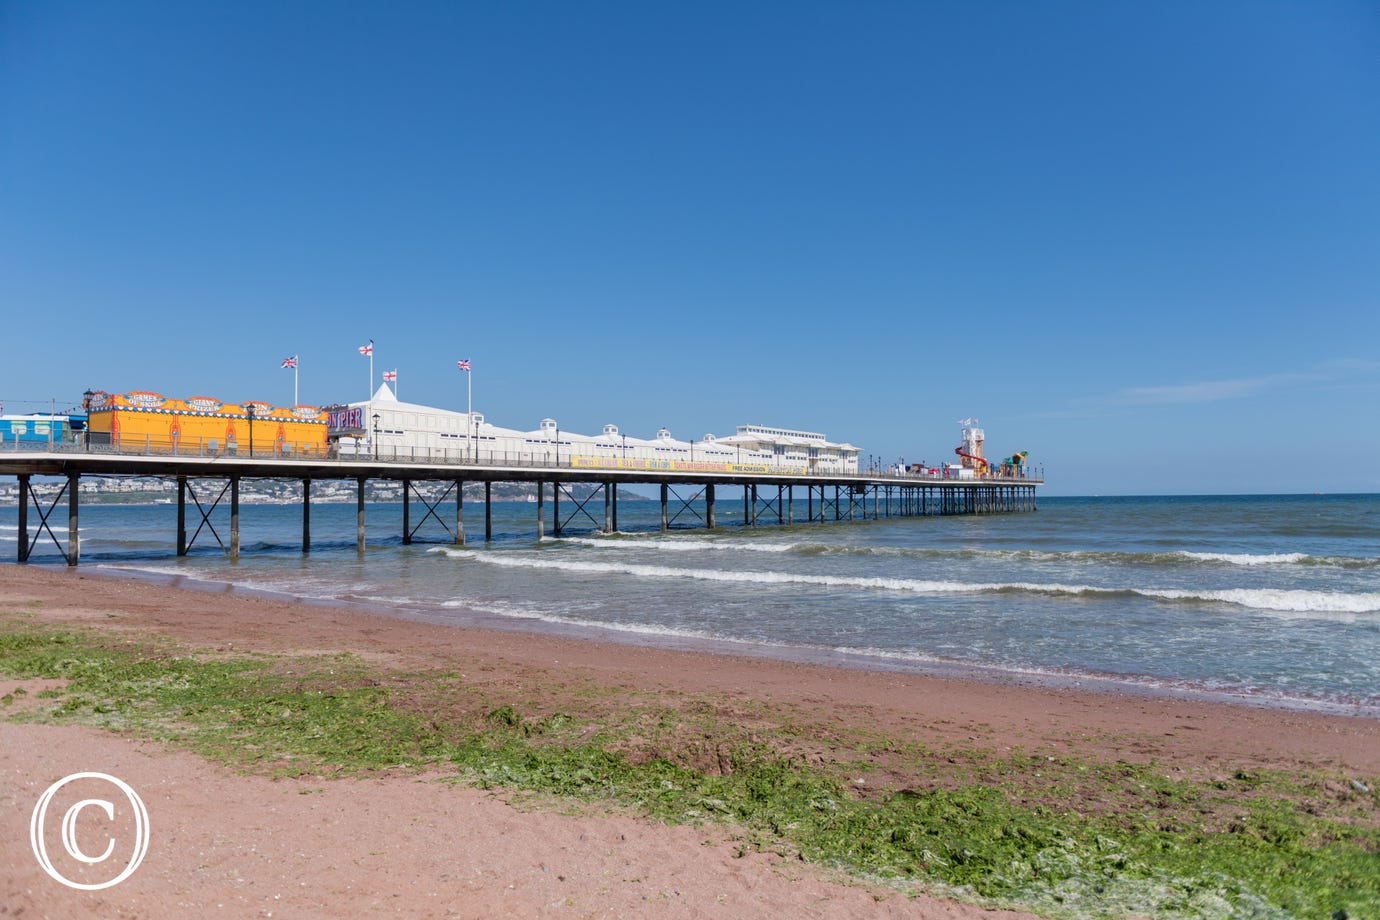 Paignton beach and pier